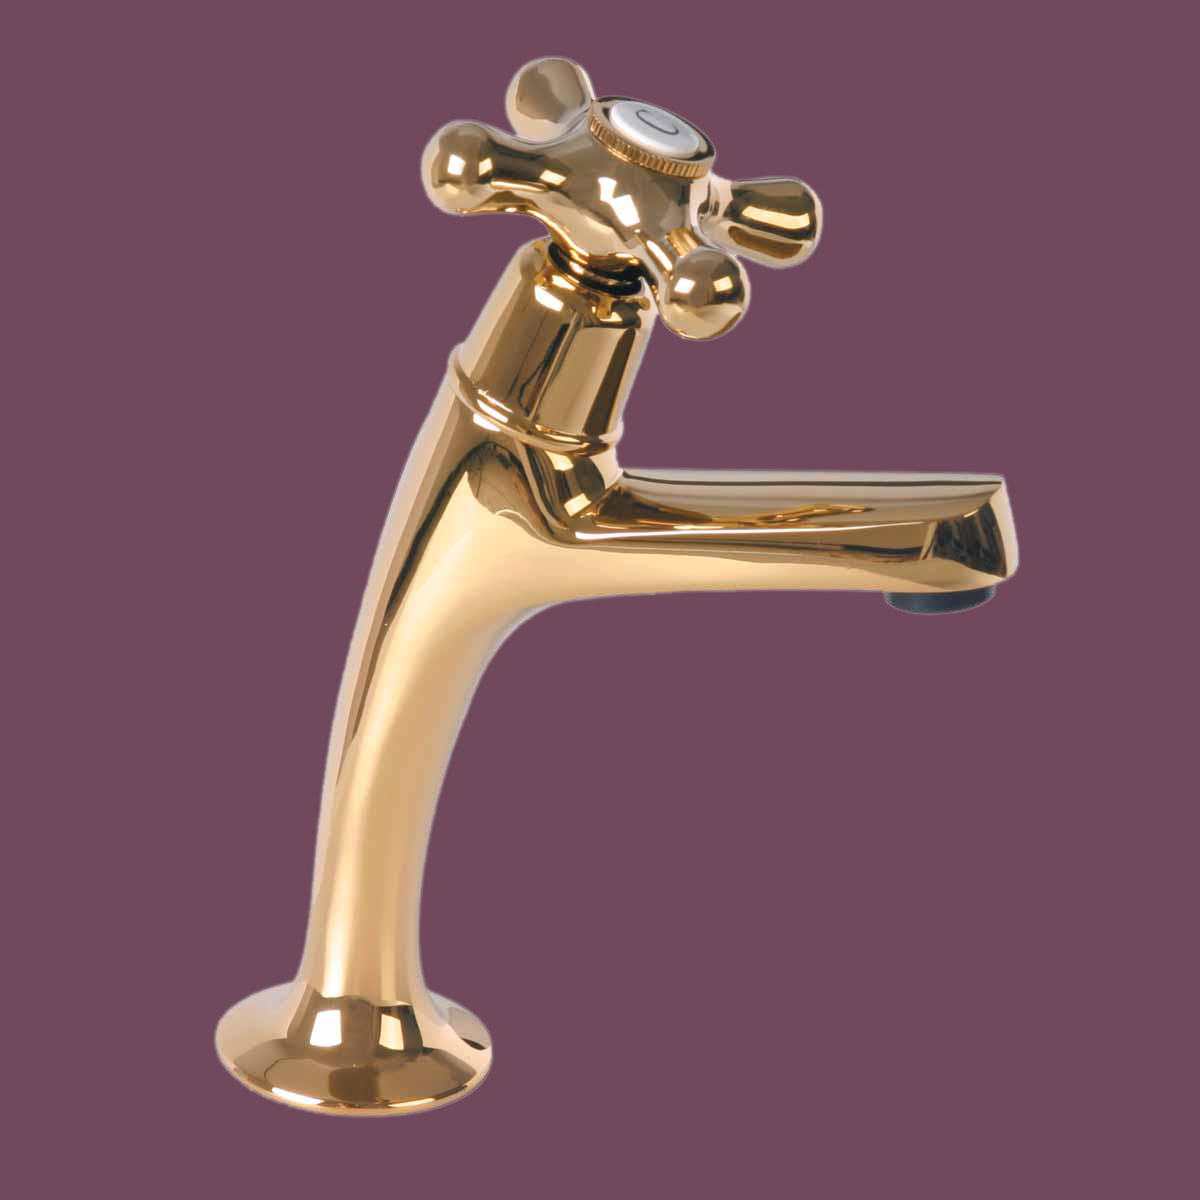 Pair Single Tap Faucet Hot & Cold Gold PVD Cross Handles